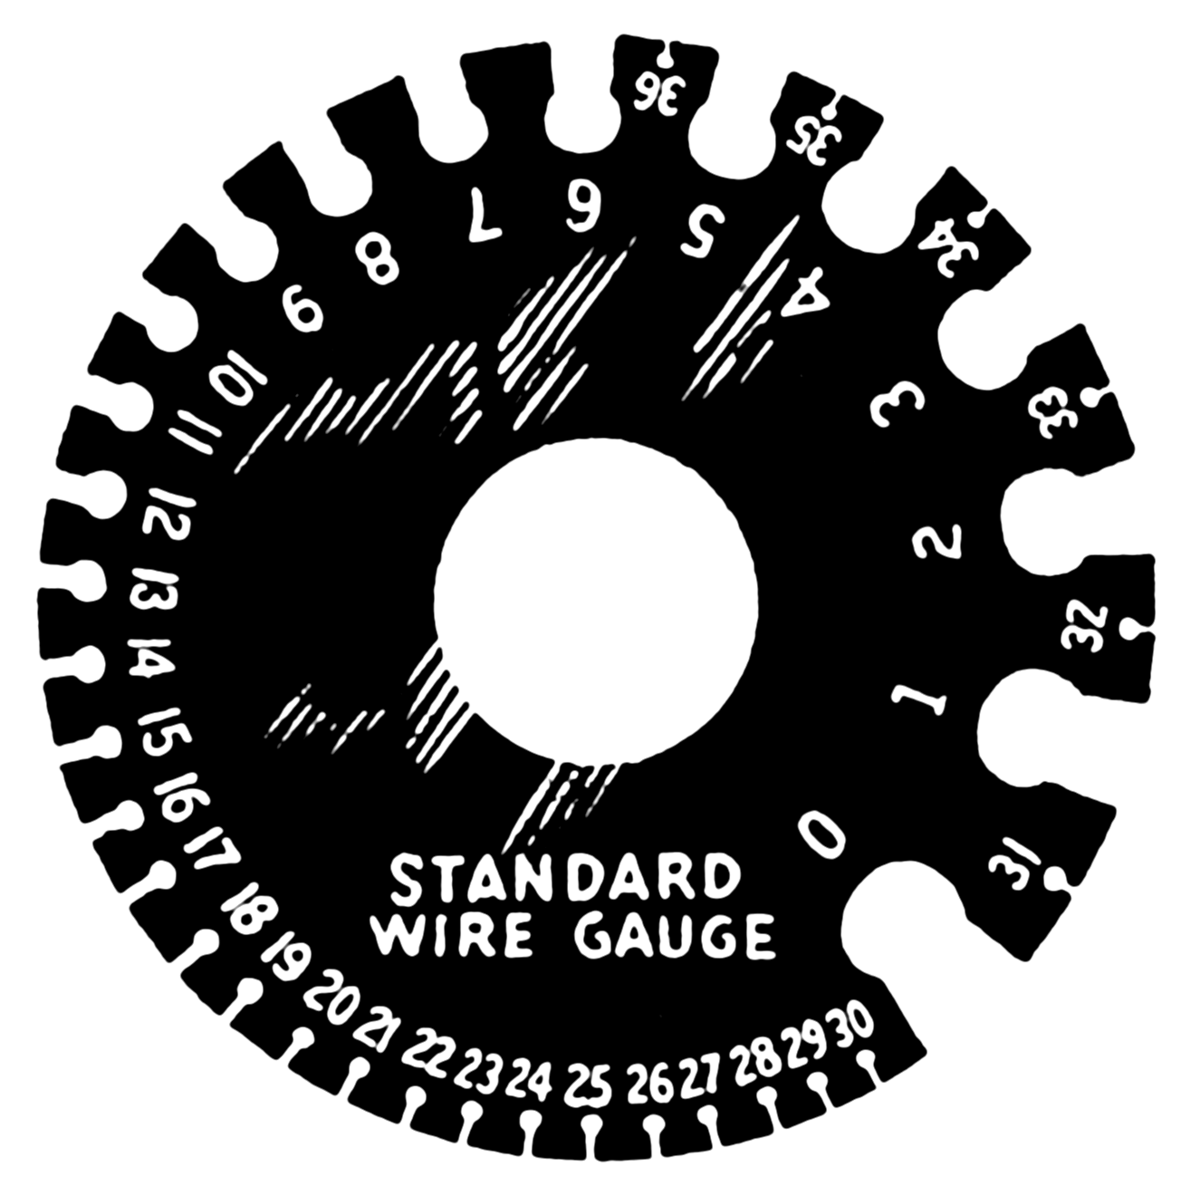 Standard wire gage chart wire center standard wire gauge wikipedia rh en wikipedia org british standard wire gauge chart british standard wire gauge chart greentooth